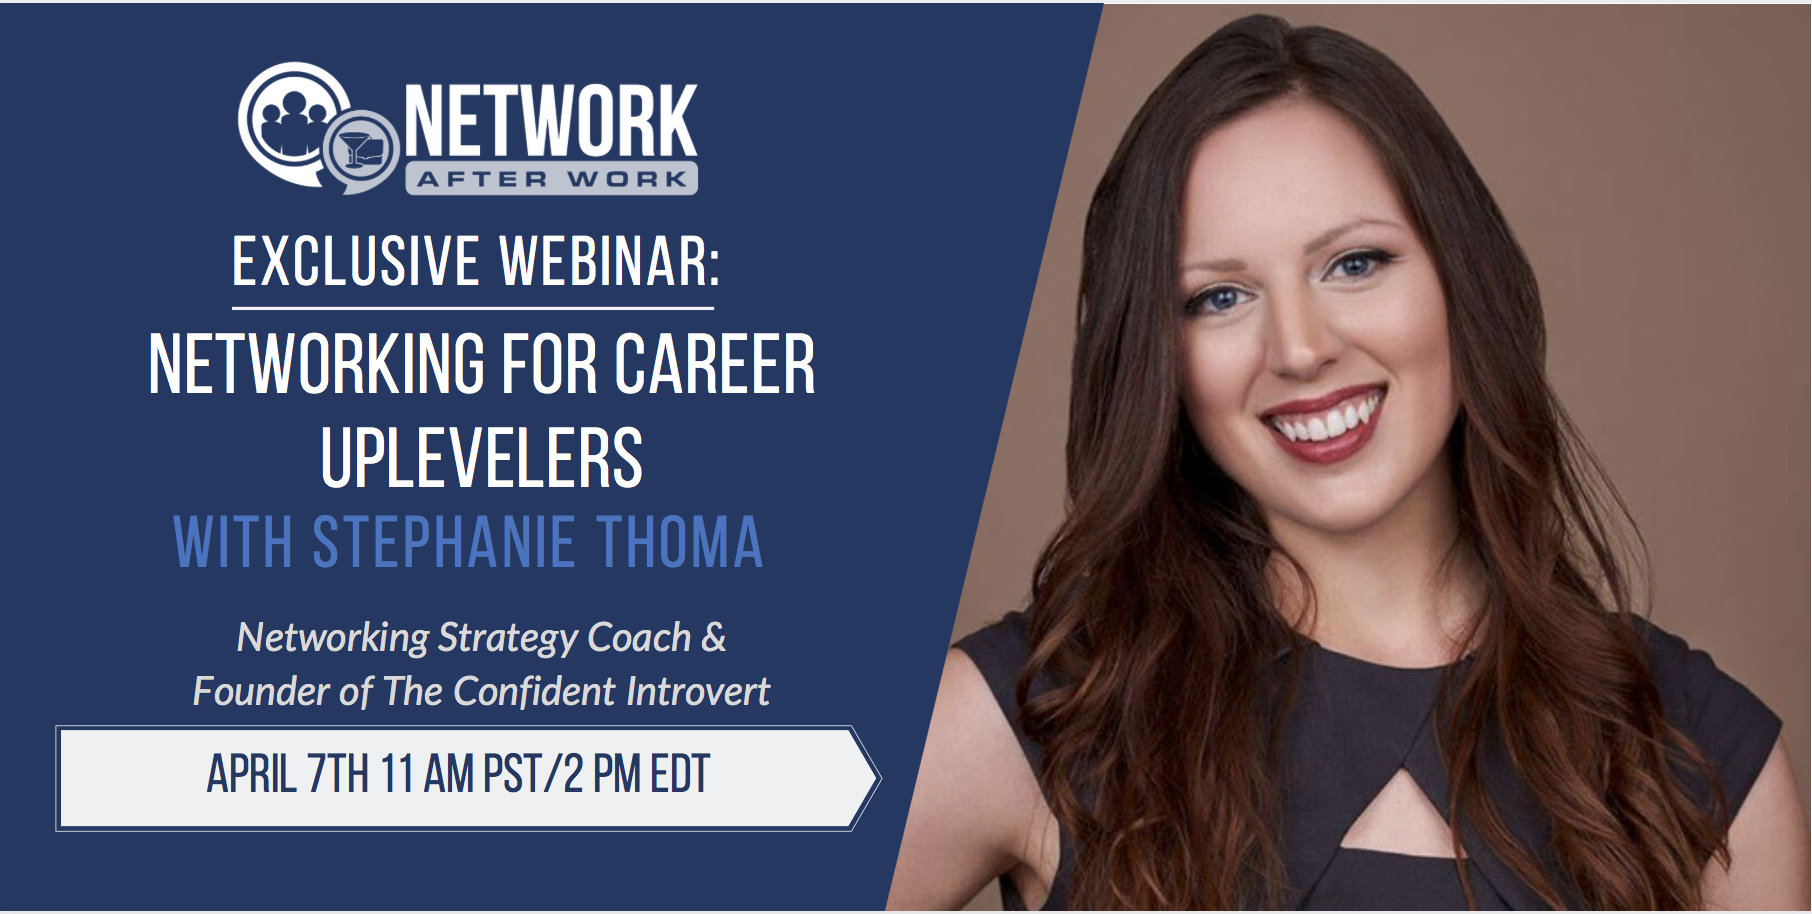 NAW Exclusive Webinar: Networking for Career Uplevelers